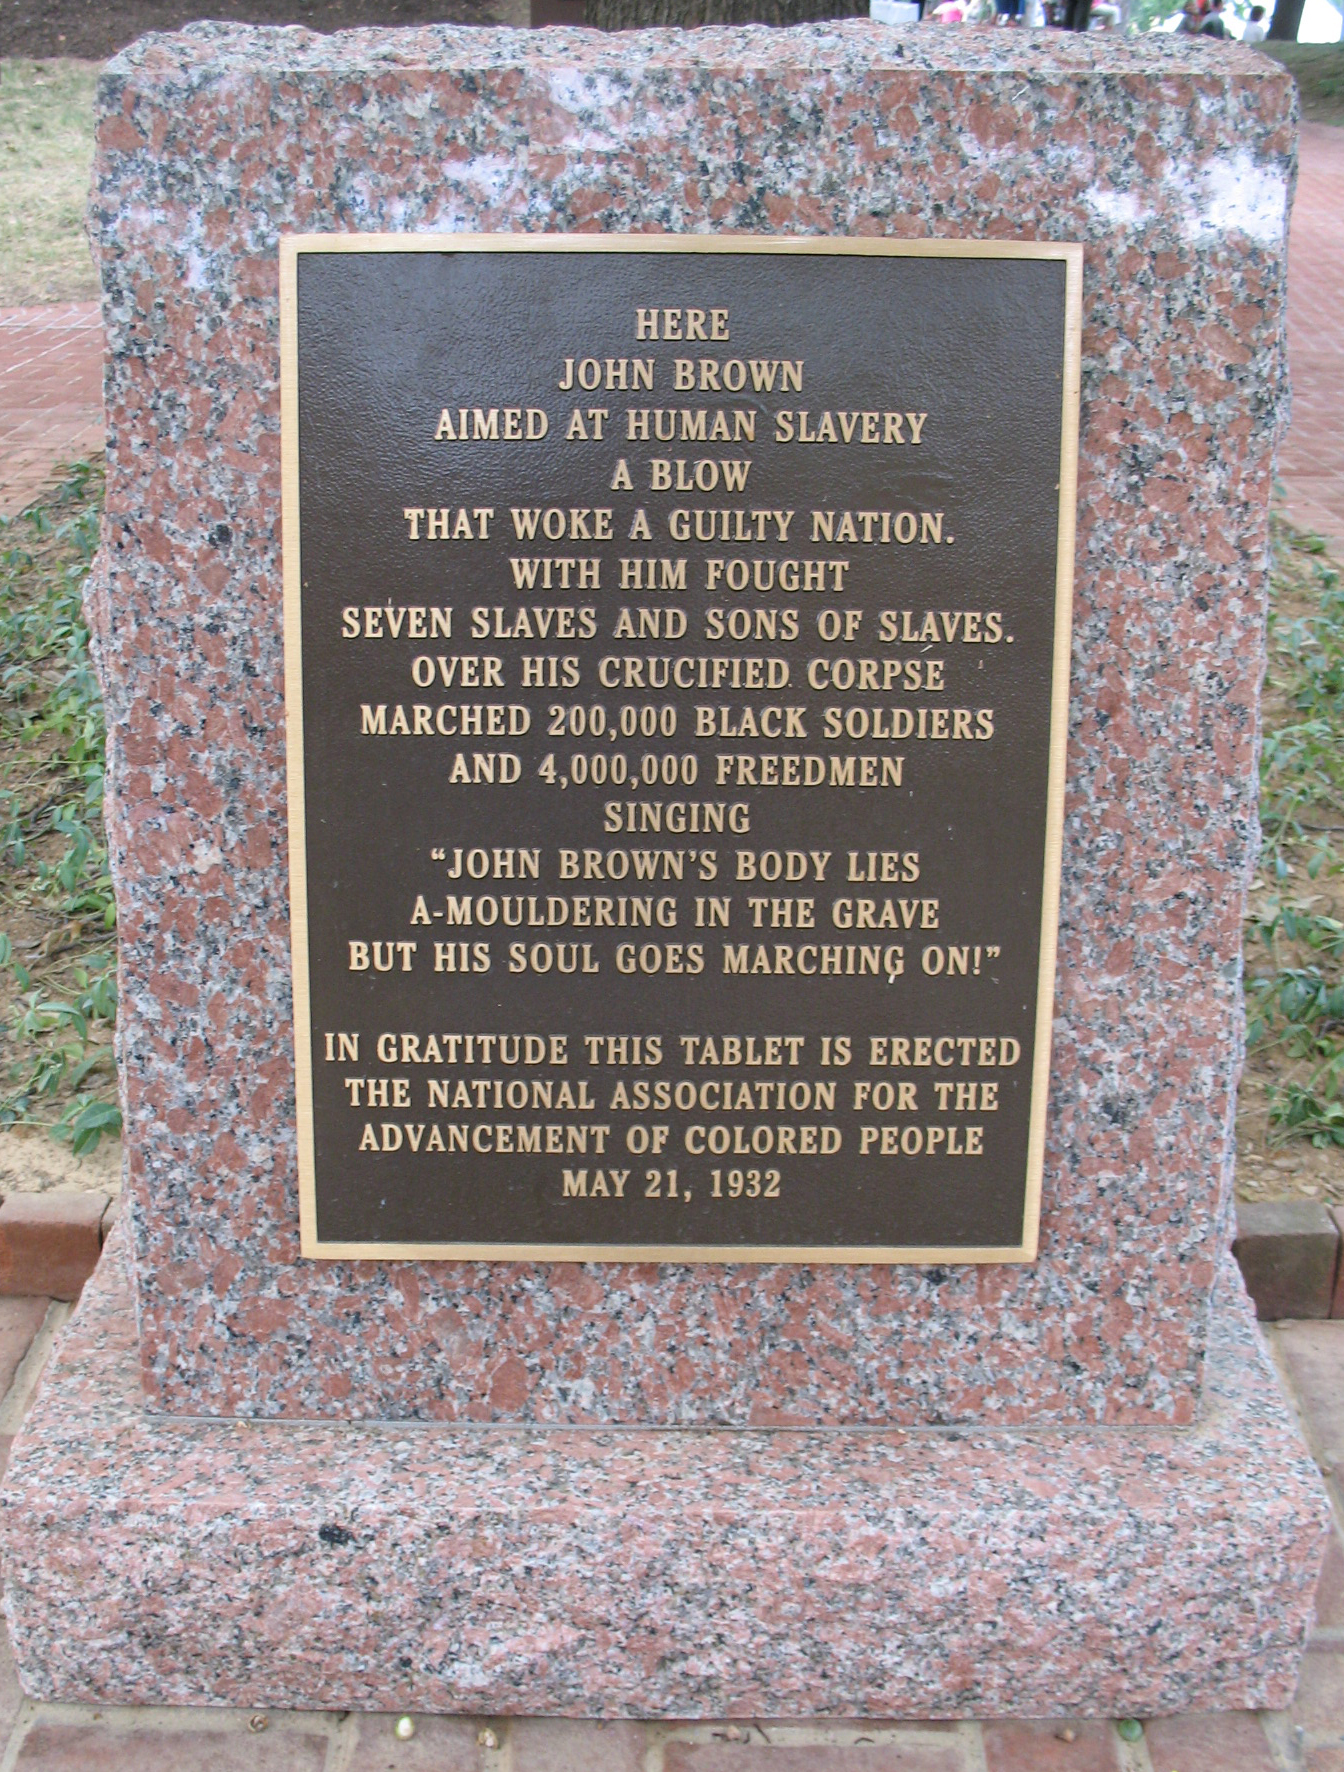 The inscription on the tablet was originally rejected by Storer College for sounding too militant. Image obtained from alliesforfreedom.org.